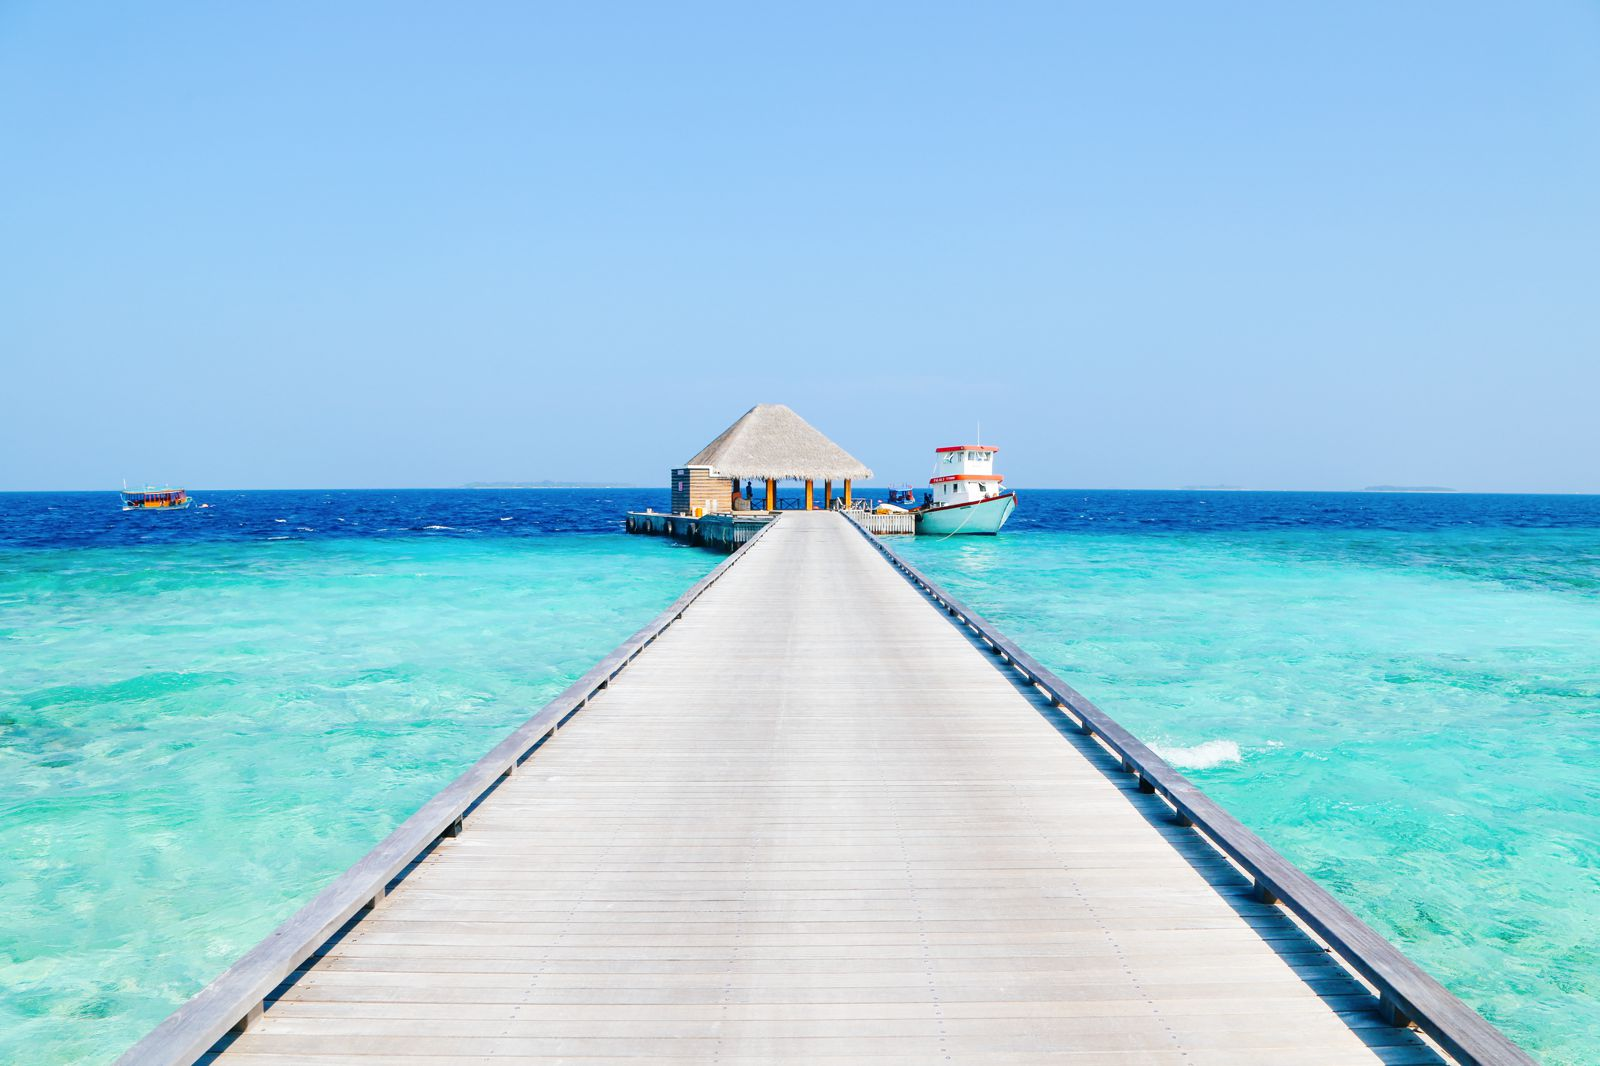 Arrival At The Dusit Thani In The Maldives! (48)